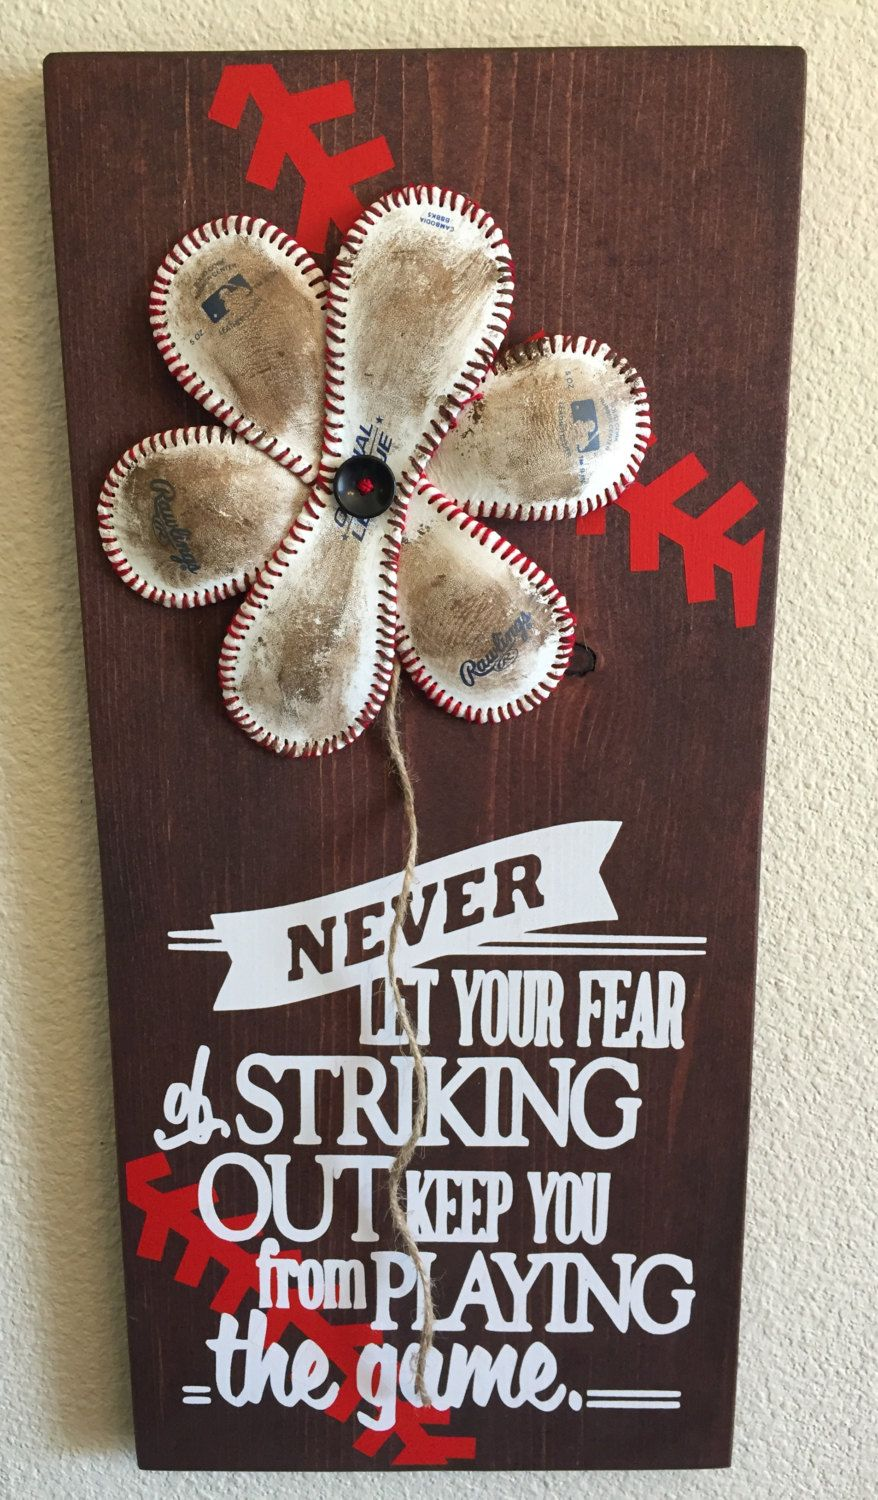 Never Let Your Fear of Striking Out Keep You From Playing